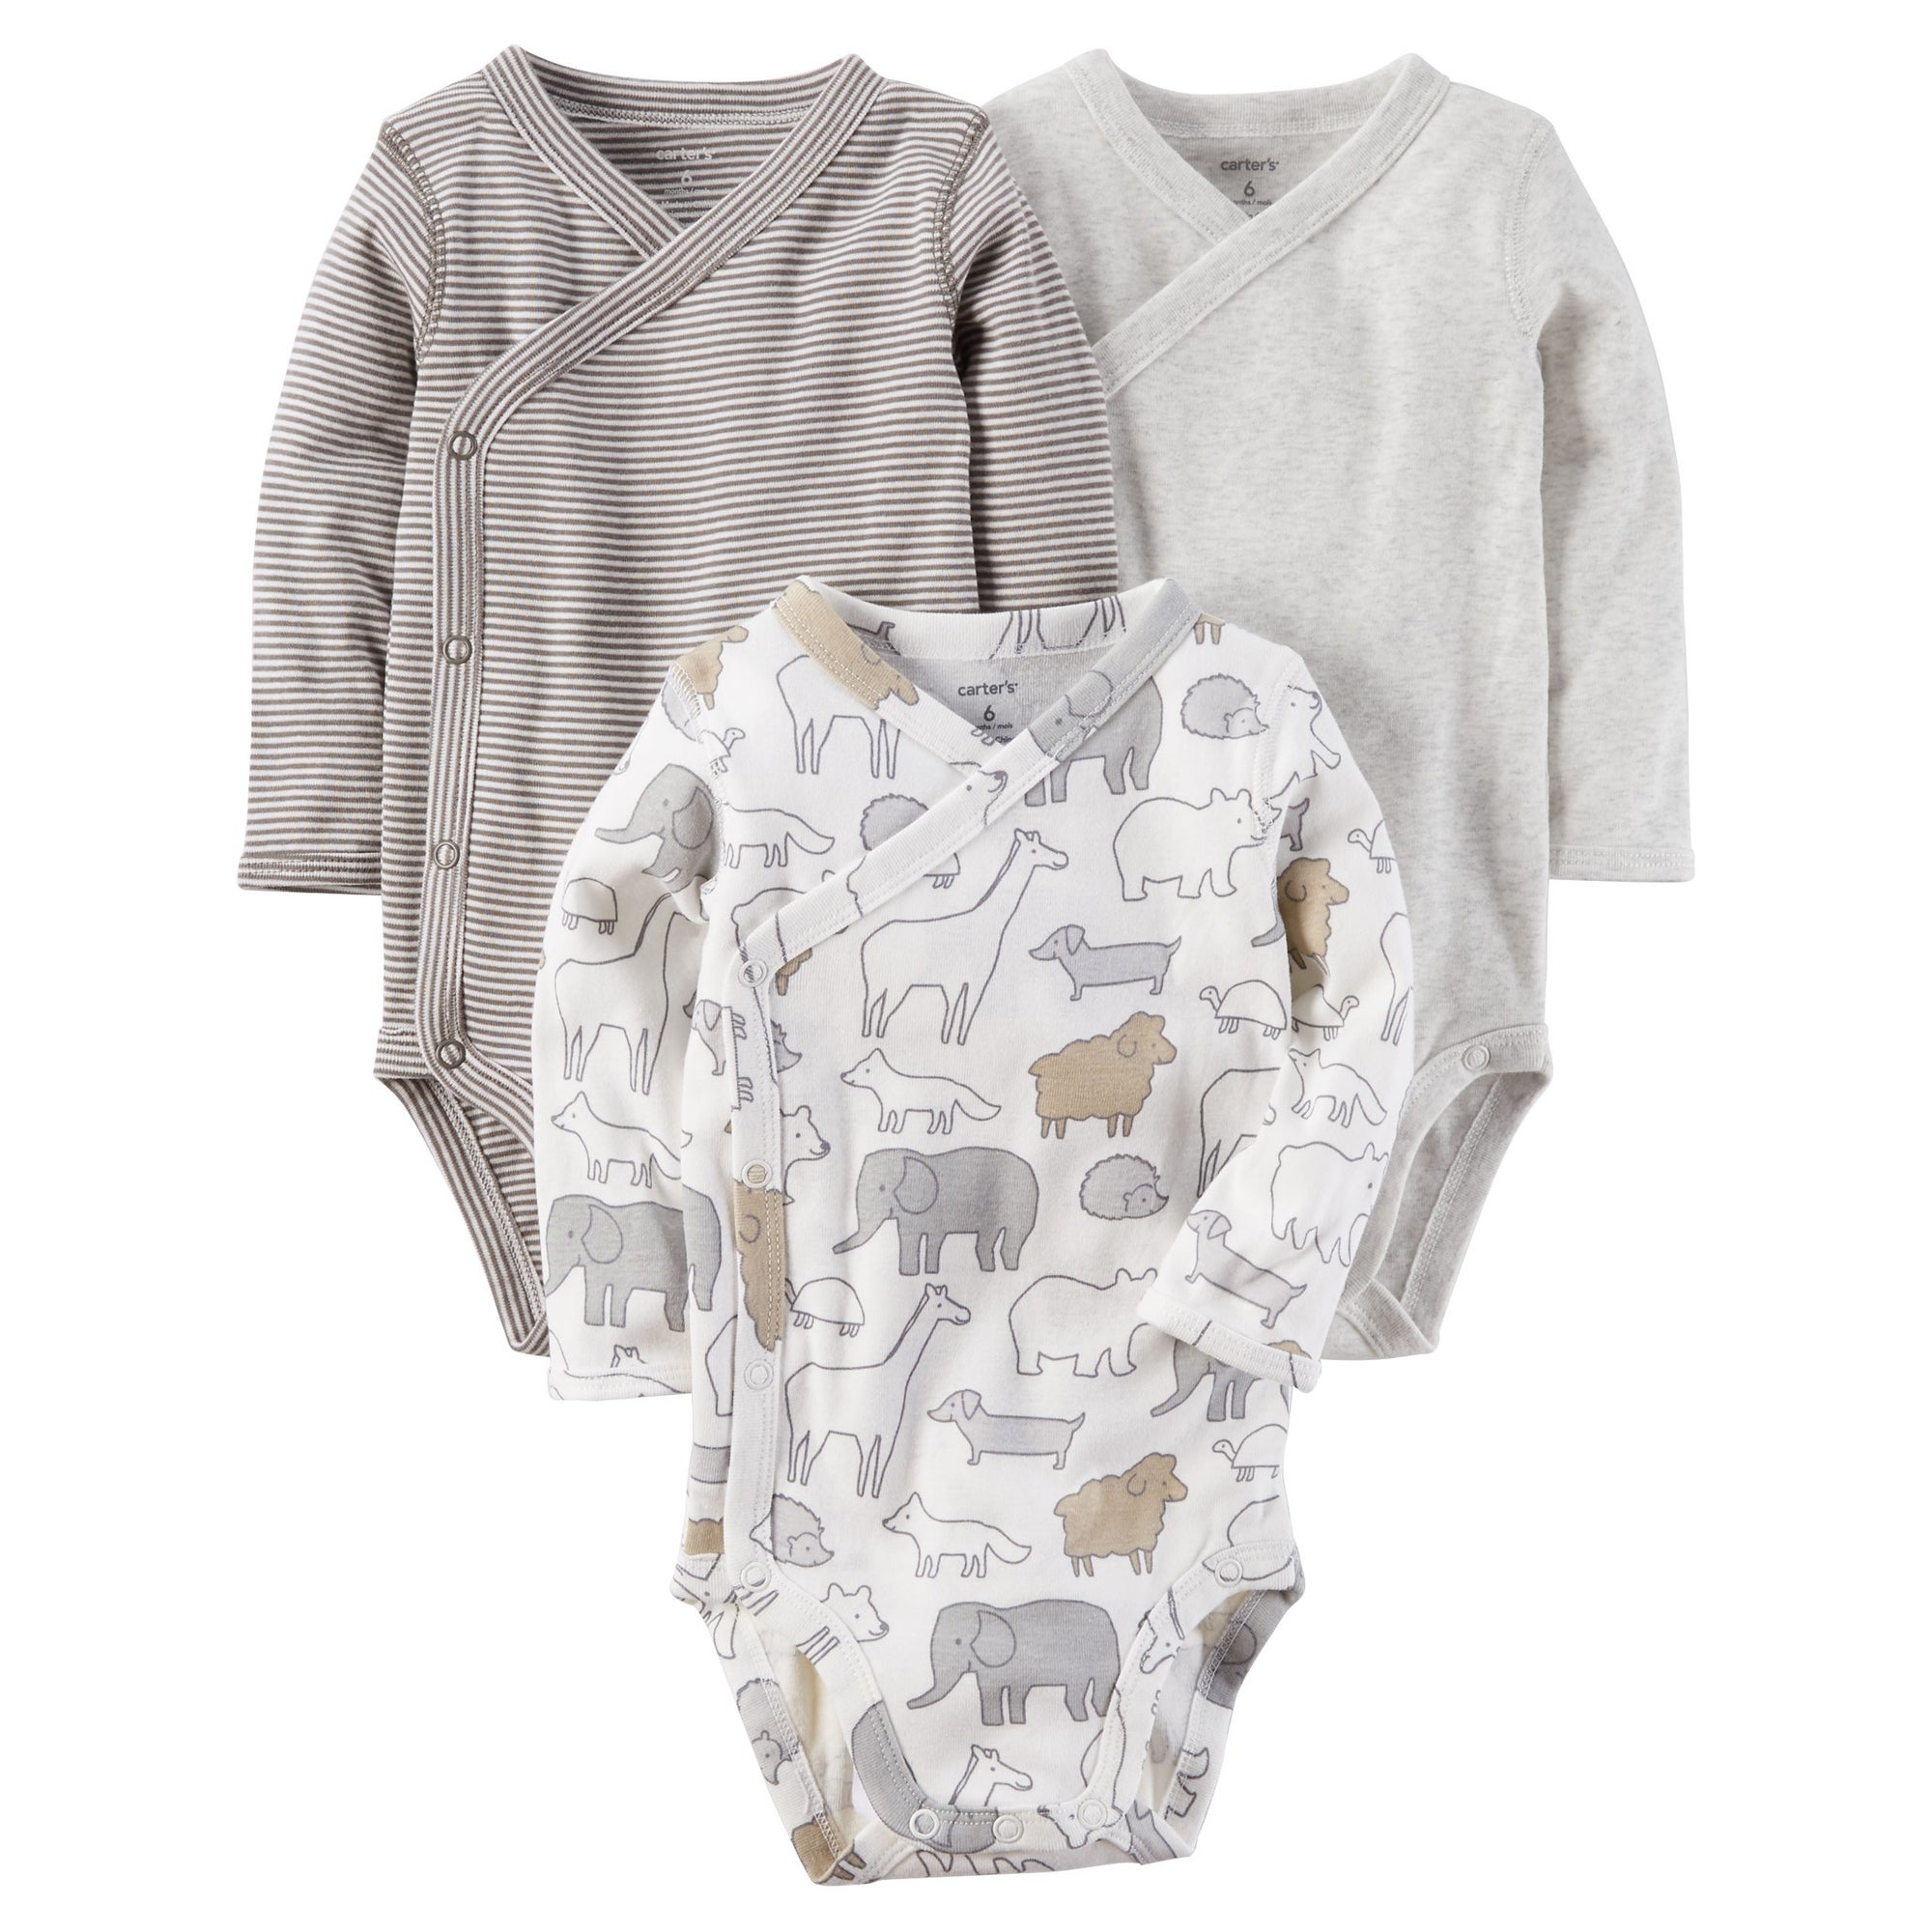 ff8675ba6 Carter's Baby Clothing | Shop our Best Baby Deals Online at Overstock